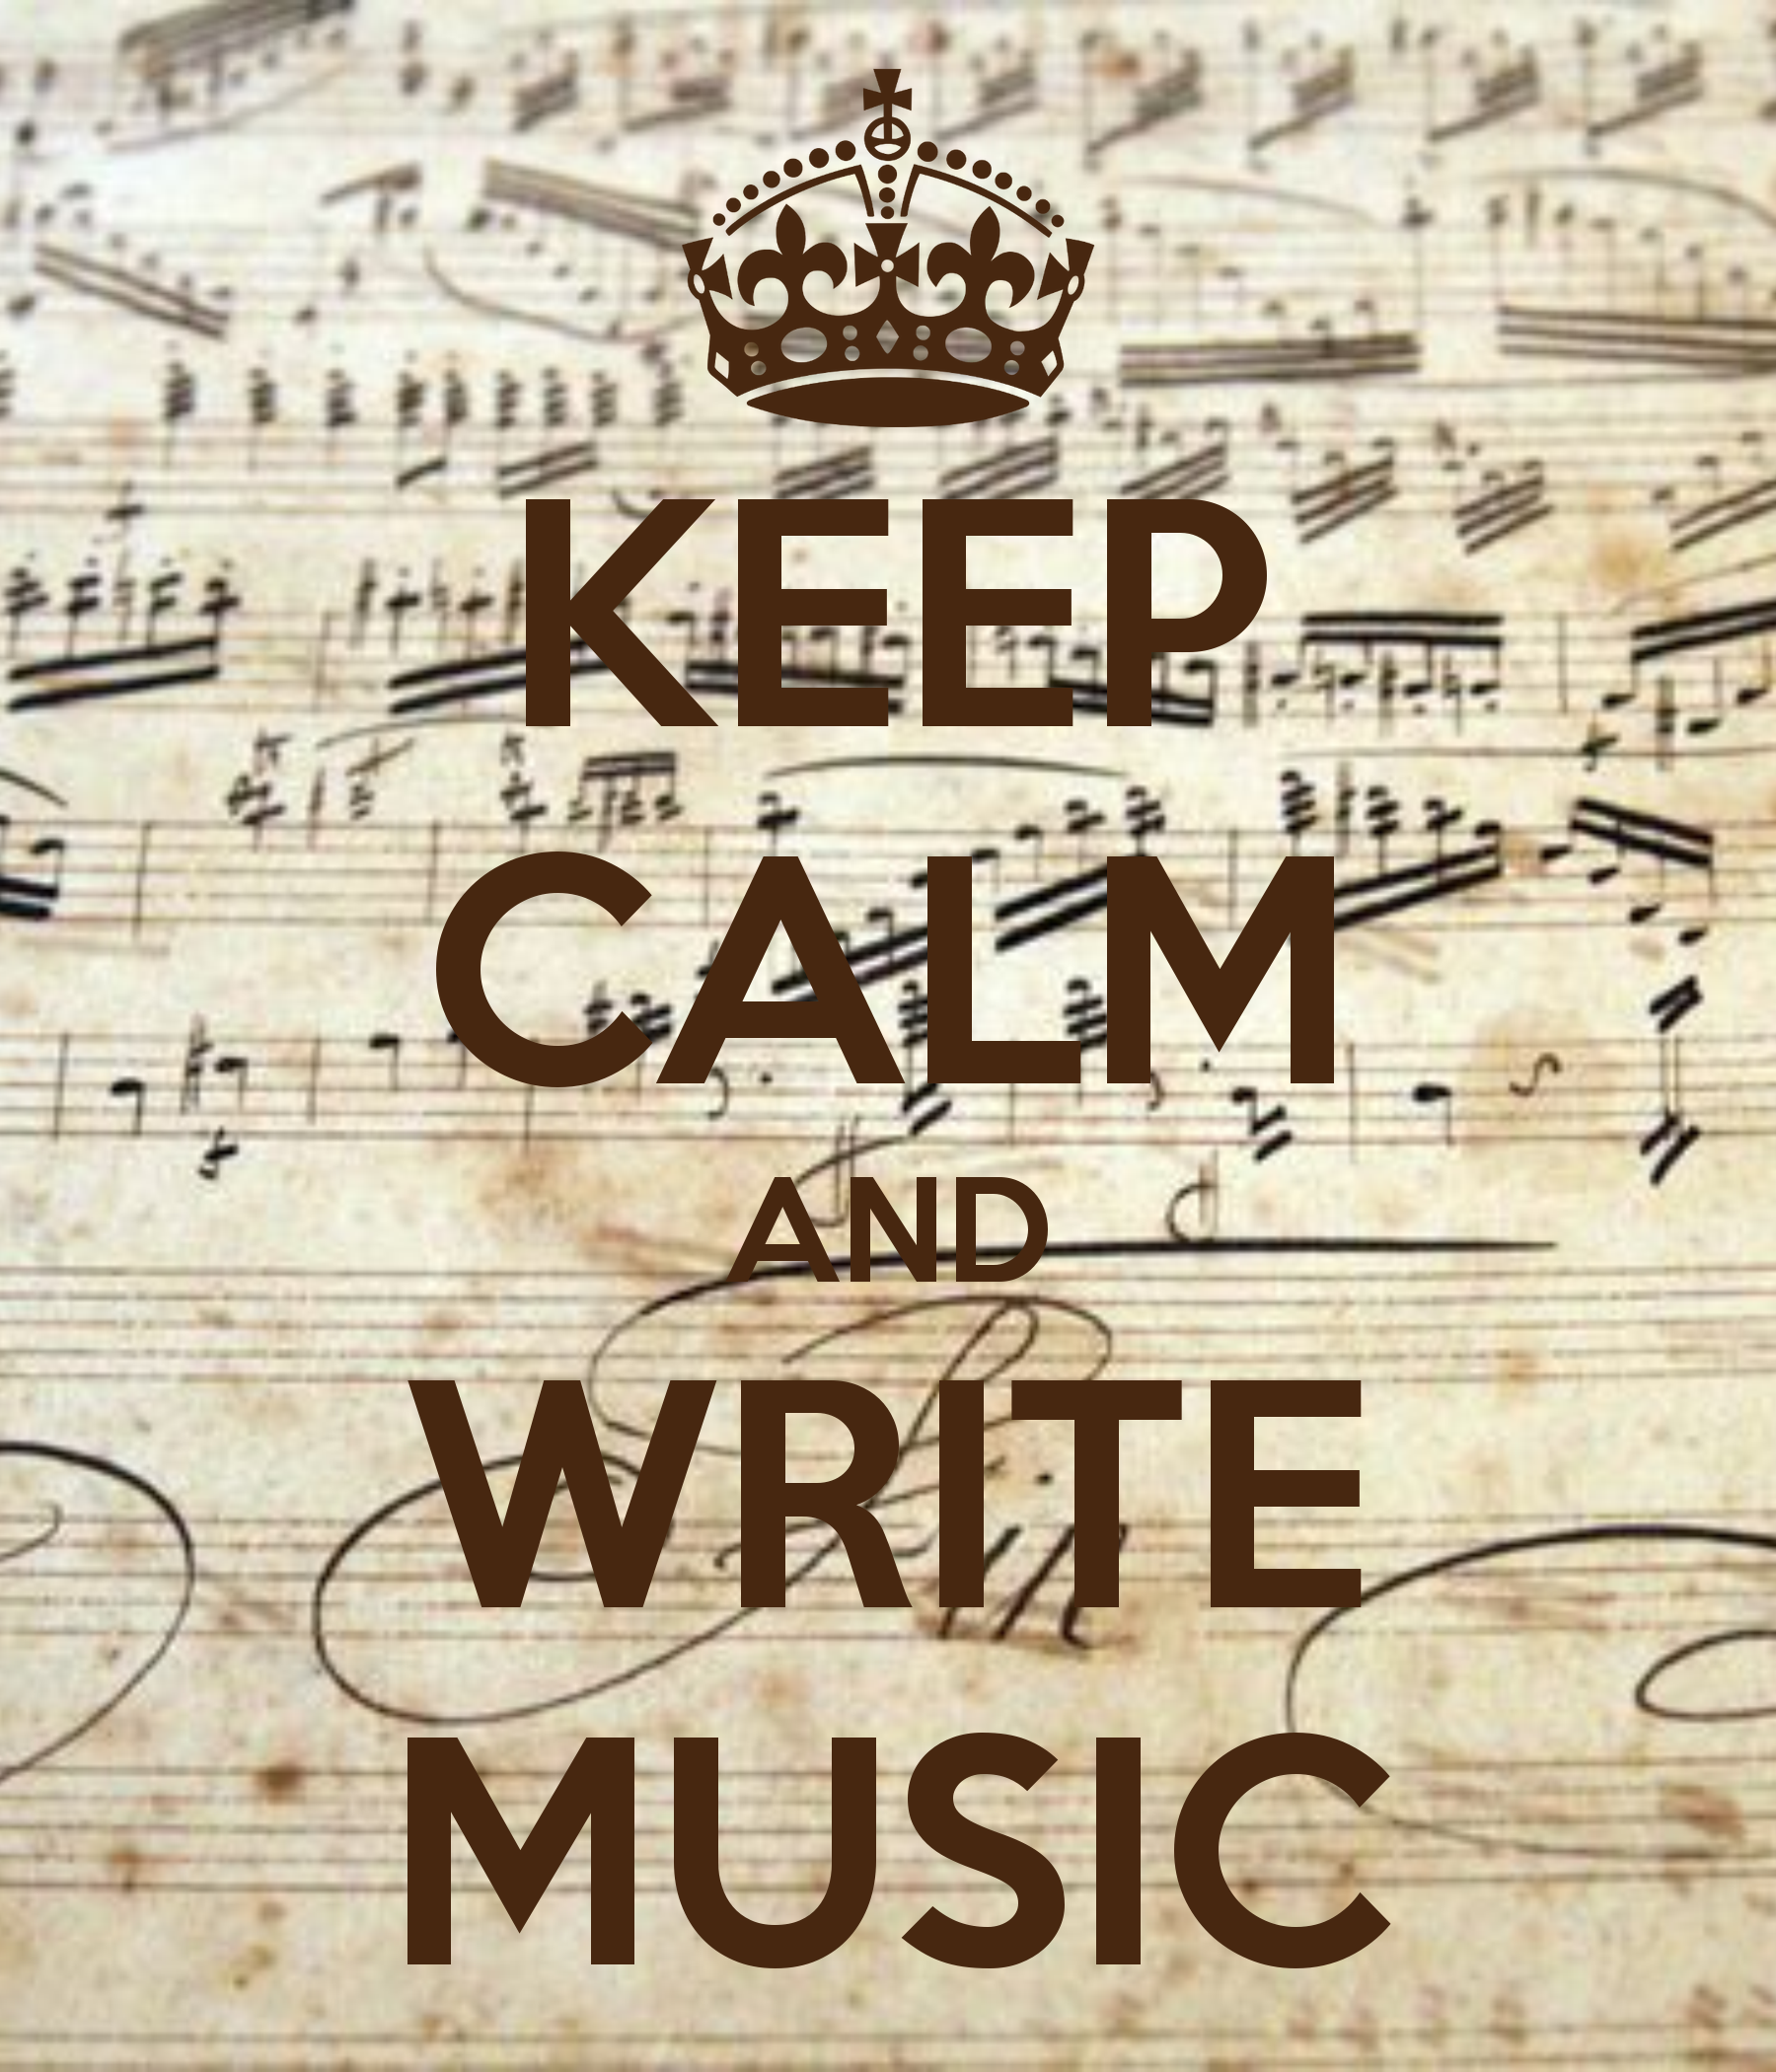 KEEP CALM AND WRITE MUSIC!! Yes!! @Nicole Novembrino Novembrino ...